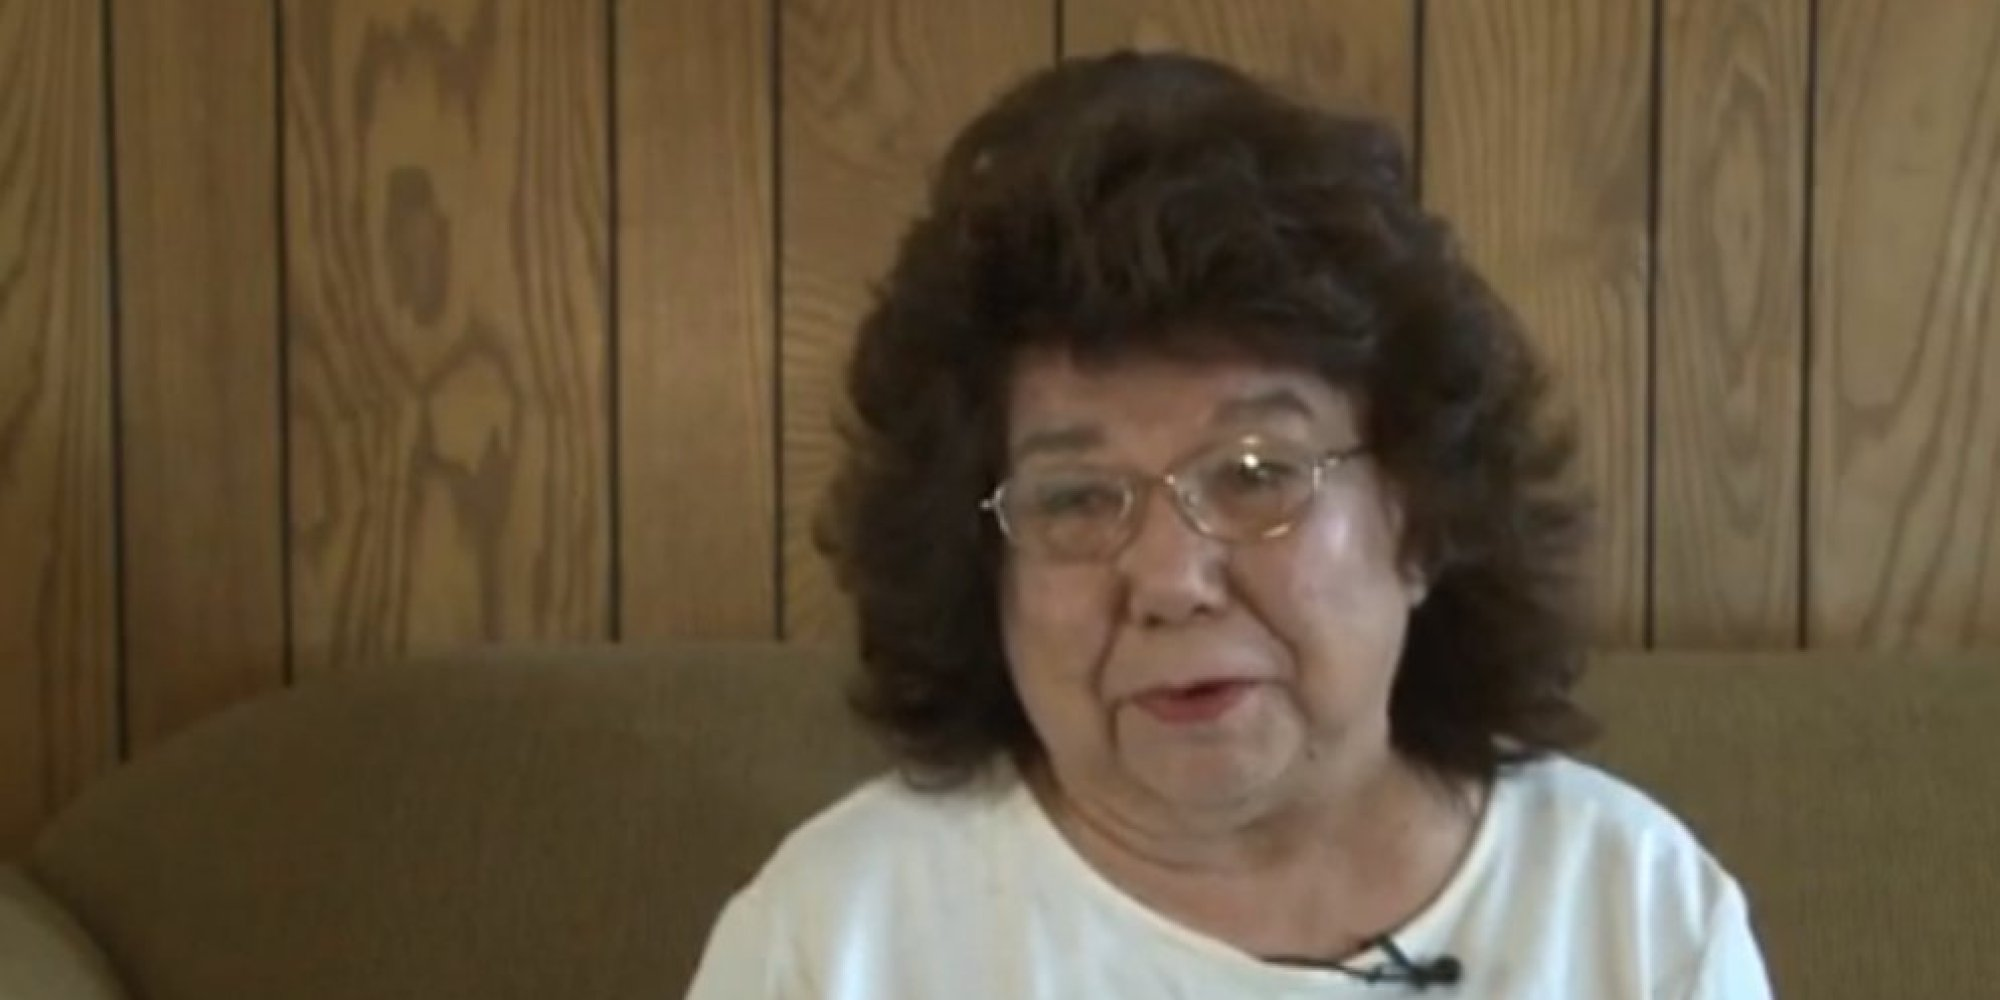 Evangeline Shelland, 70, Fighting Bingo Ban | HuffPost